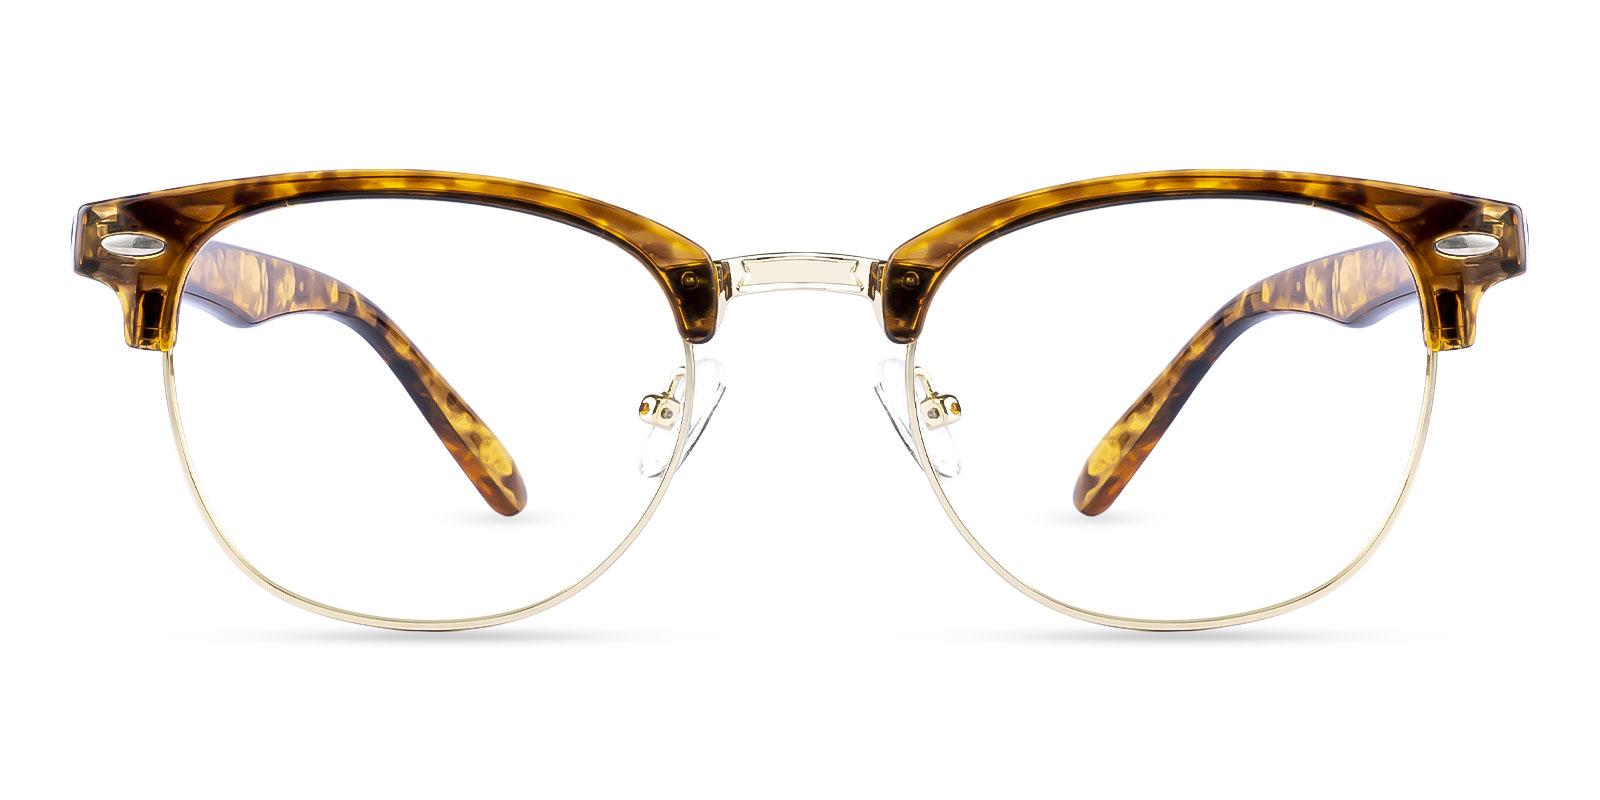 Greeley Gold Metal NosePads , Eyeglasses Frames from ABBE Glasses